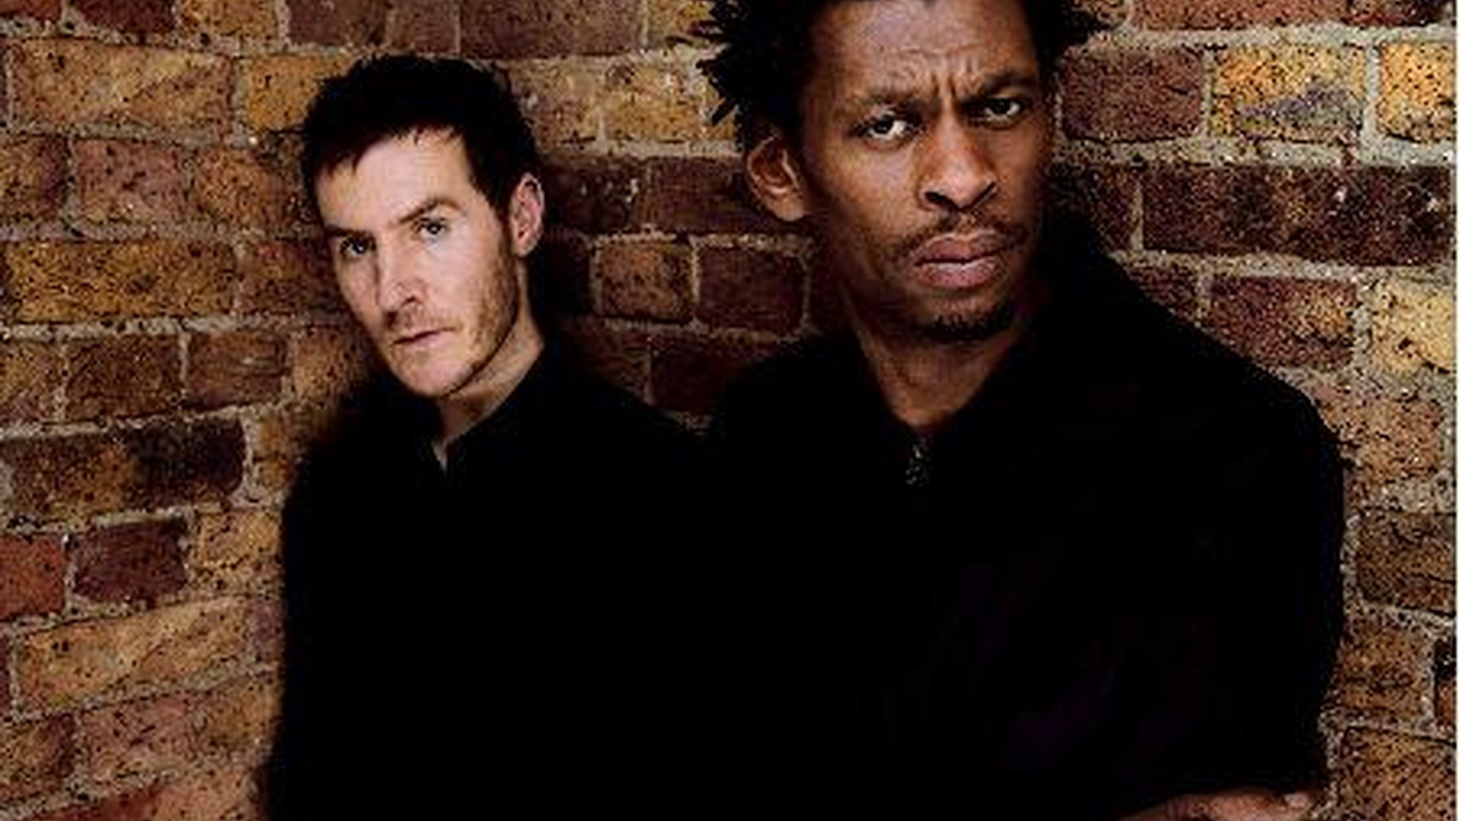 Massive Attack offer a rare and exclusive live session with an appearance from reggae superstar Horace Andy on Morning Becomes Eclectic at 11:15am.